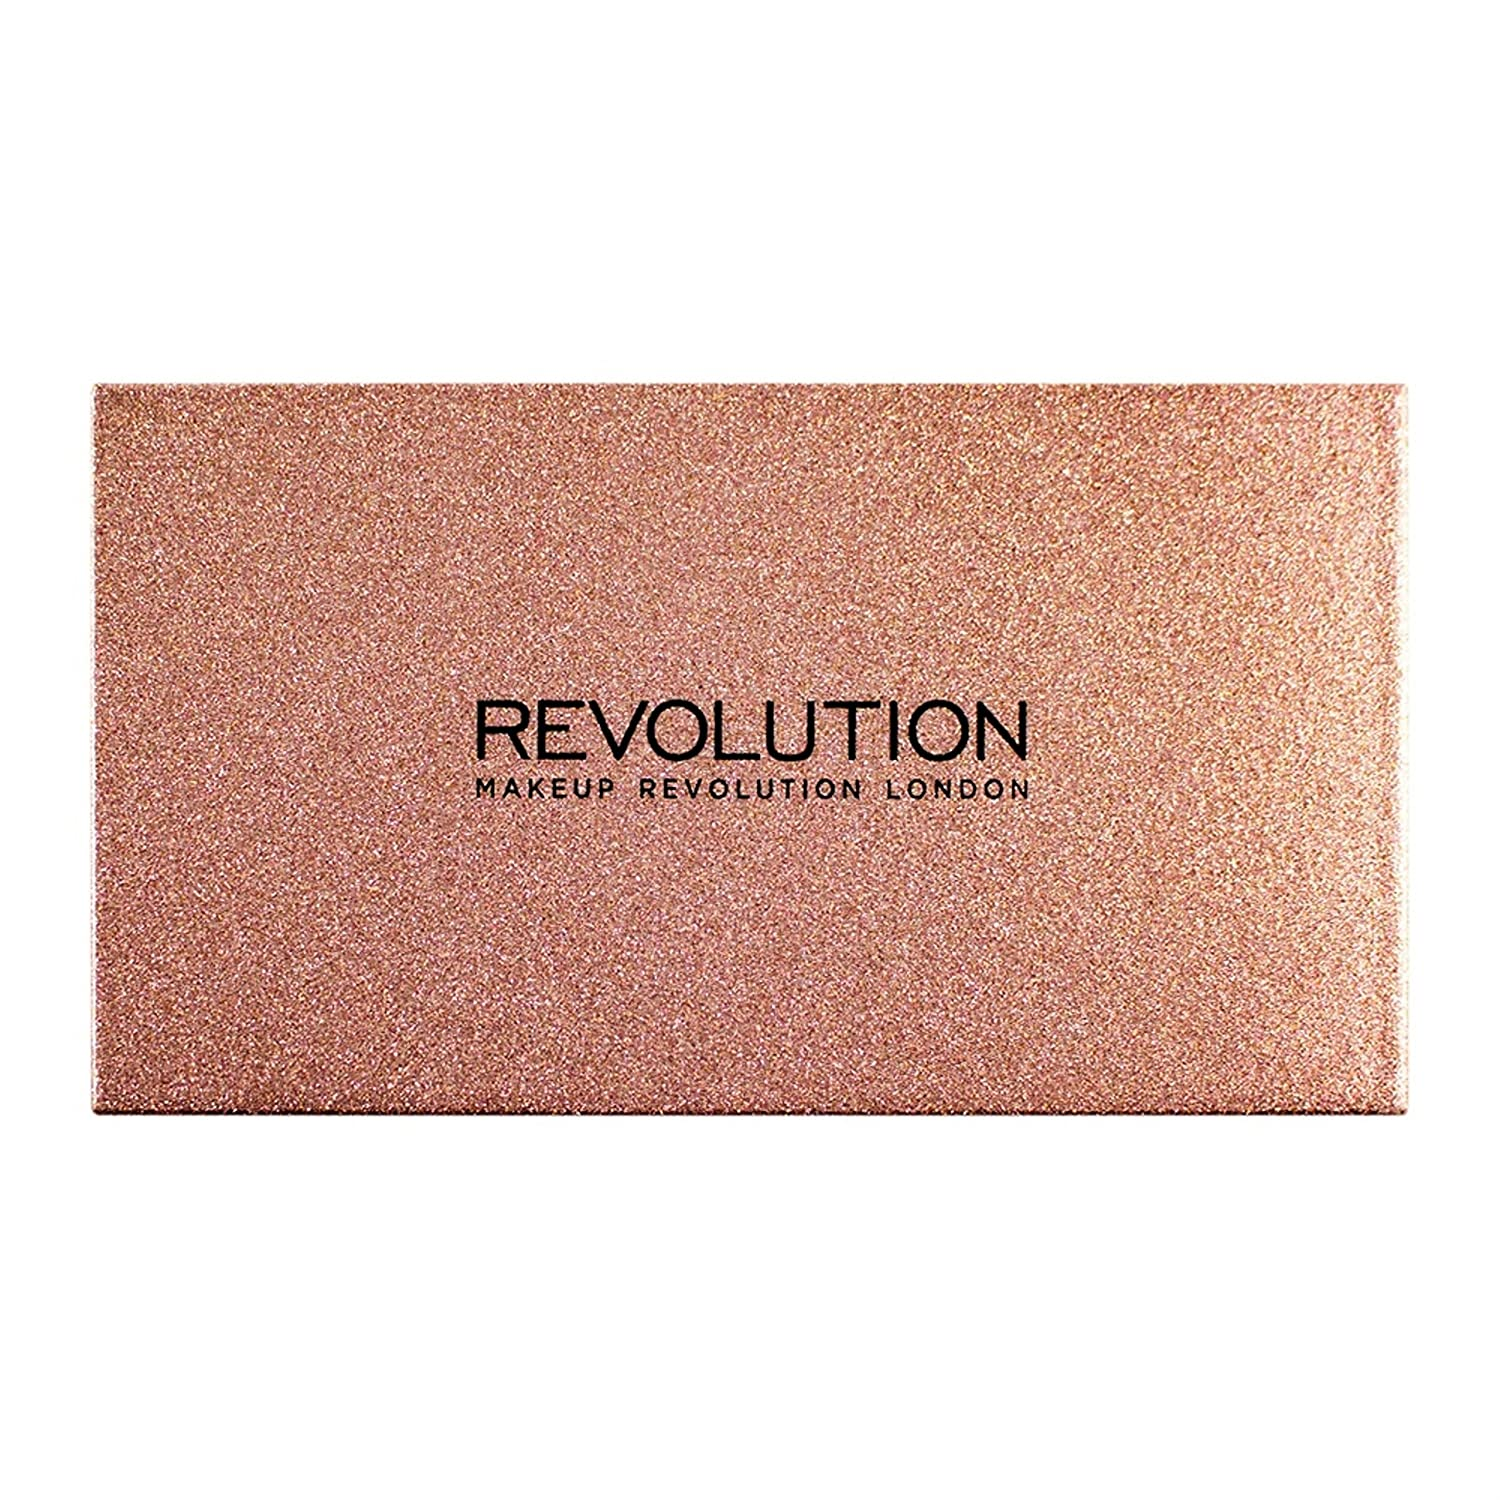 Make-up Revolution Life on the Dance Floor Lidschatten palette- Gäste Liste Makeup Revolution 5057566008716